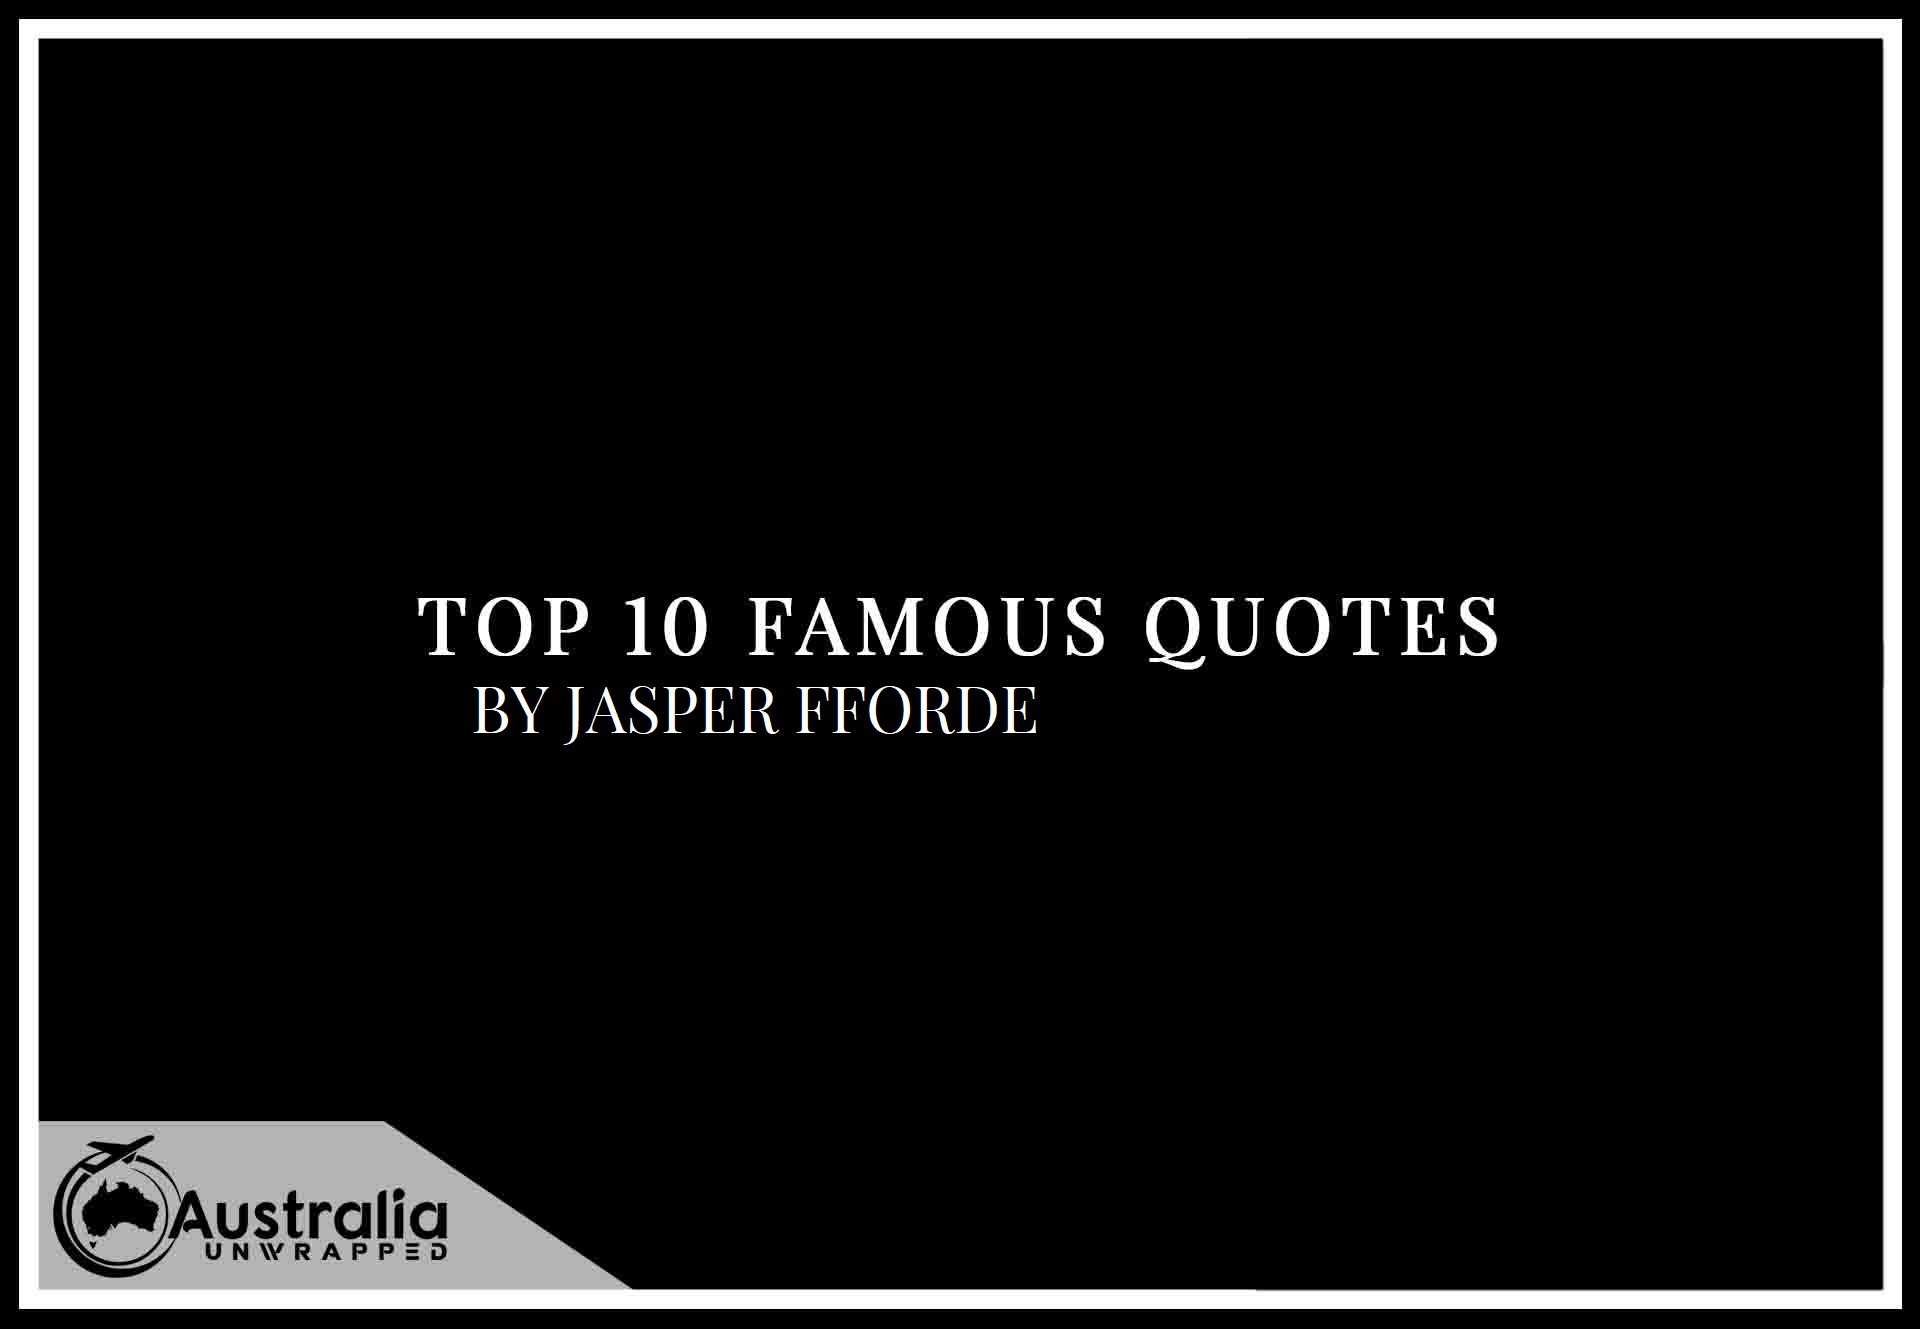 Top 10 Famous Quotes by Author Jasper Fforde